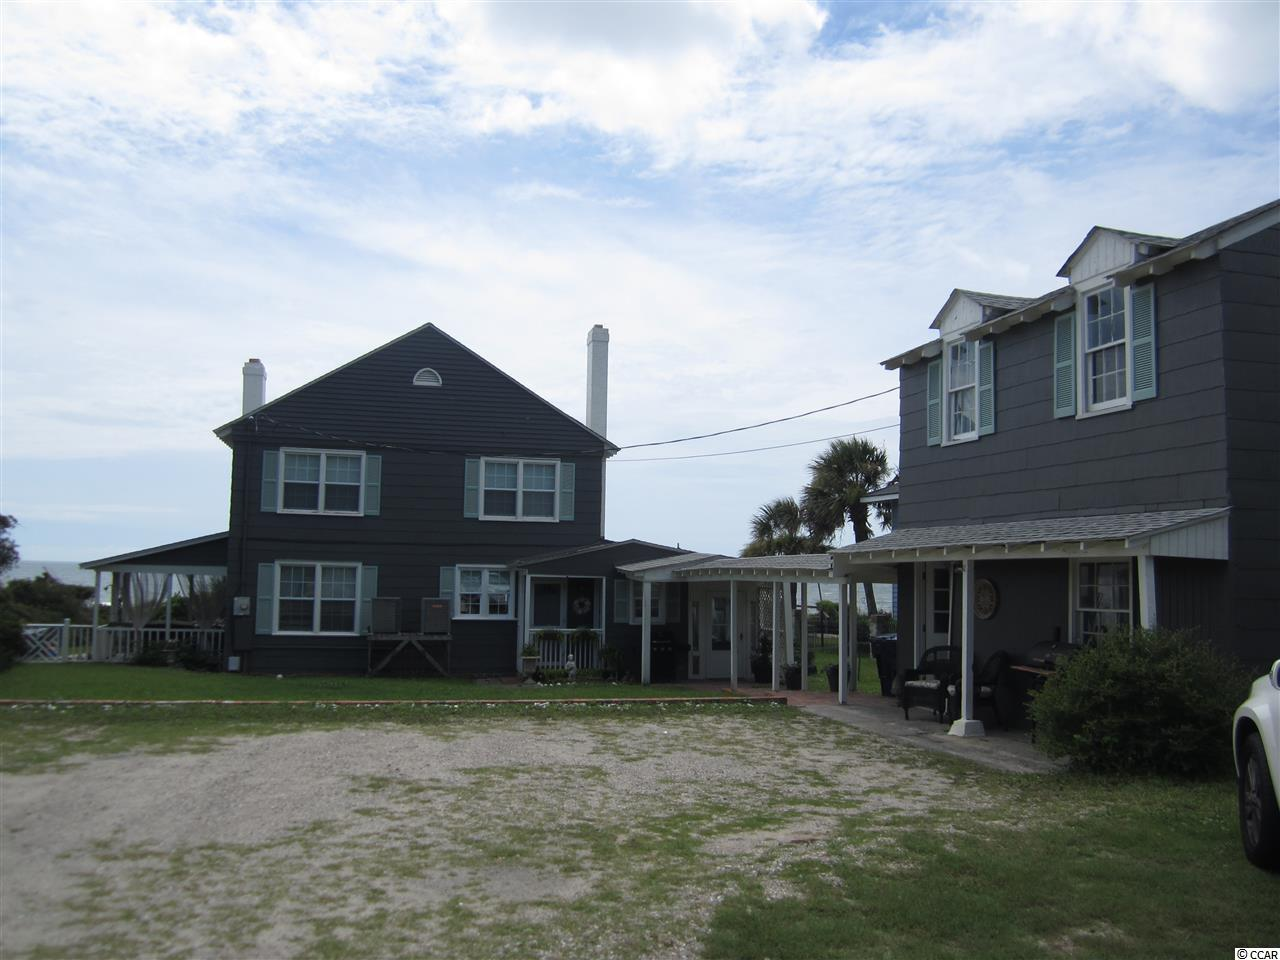 Single Family Home for Sale at 6210 N Ocean Blvd 6210 N Ocean Blvd Myrtle Beach, South Carolina 29577 United States